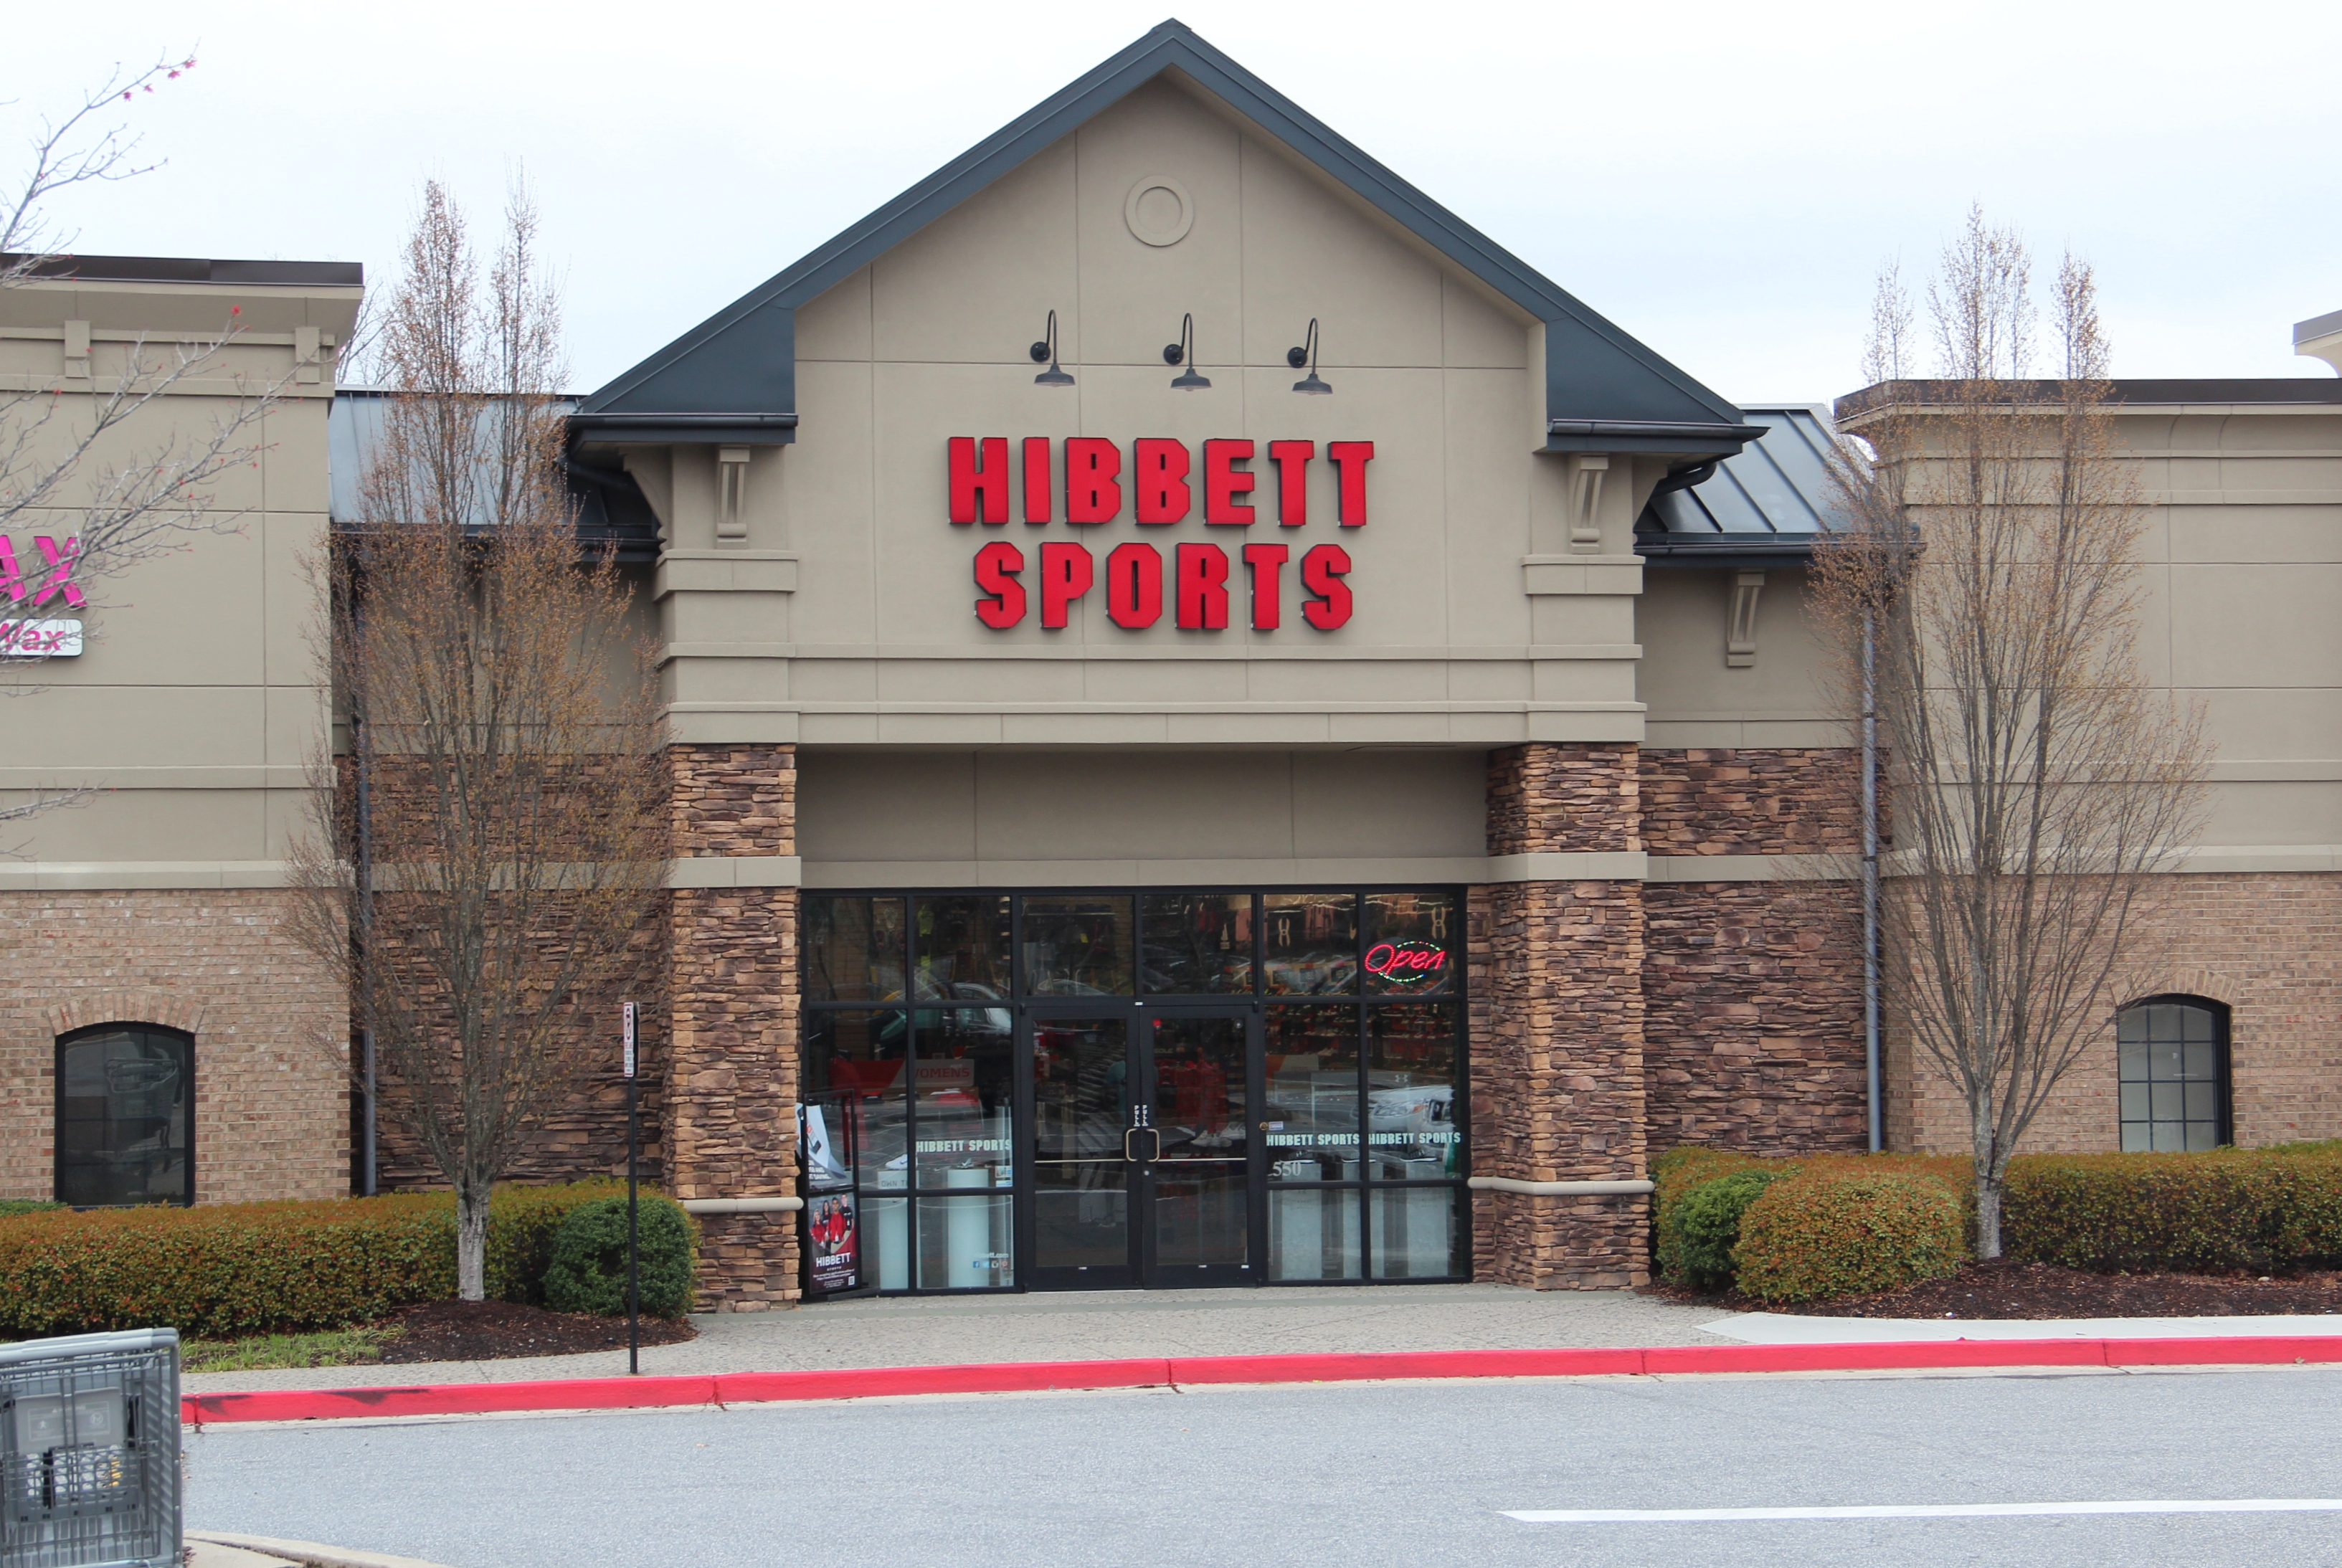 8e1cd3953833f Hibbett Sports - Wikipedia